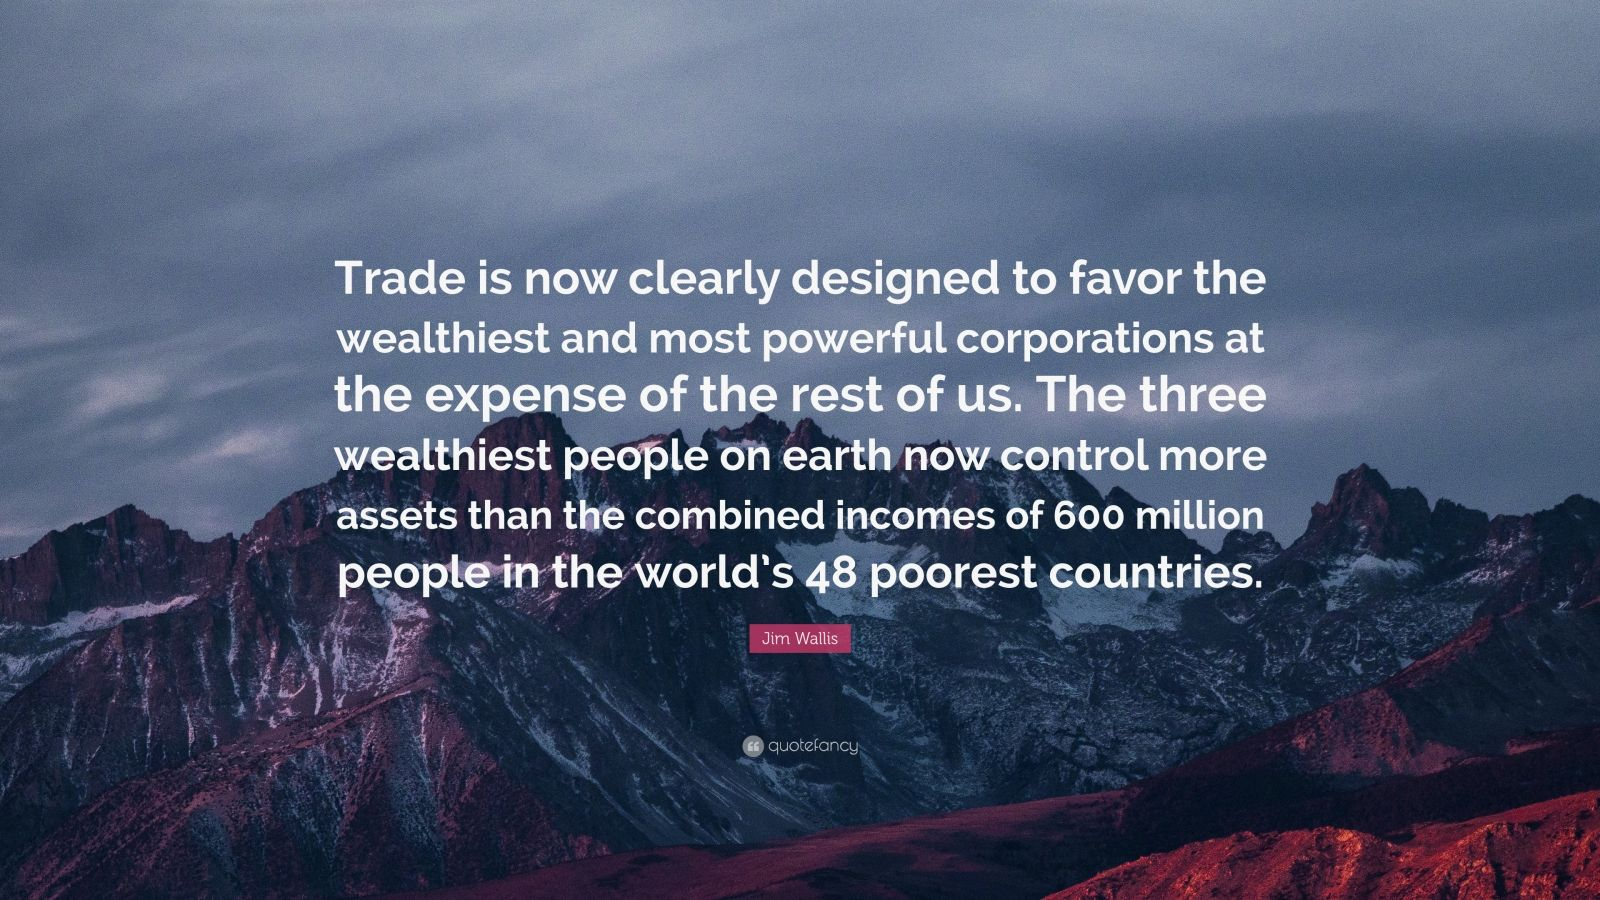 "Jim Wallis Quote: ""Trade is now clearly designed to favor the wealthiest and most powerful corporations at the expense of the rest of us. The three wealthiest people on earth now control more assets than the combined incomes of 600 million people in the world's 48 poorest countries."""